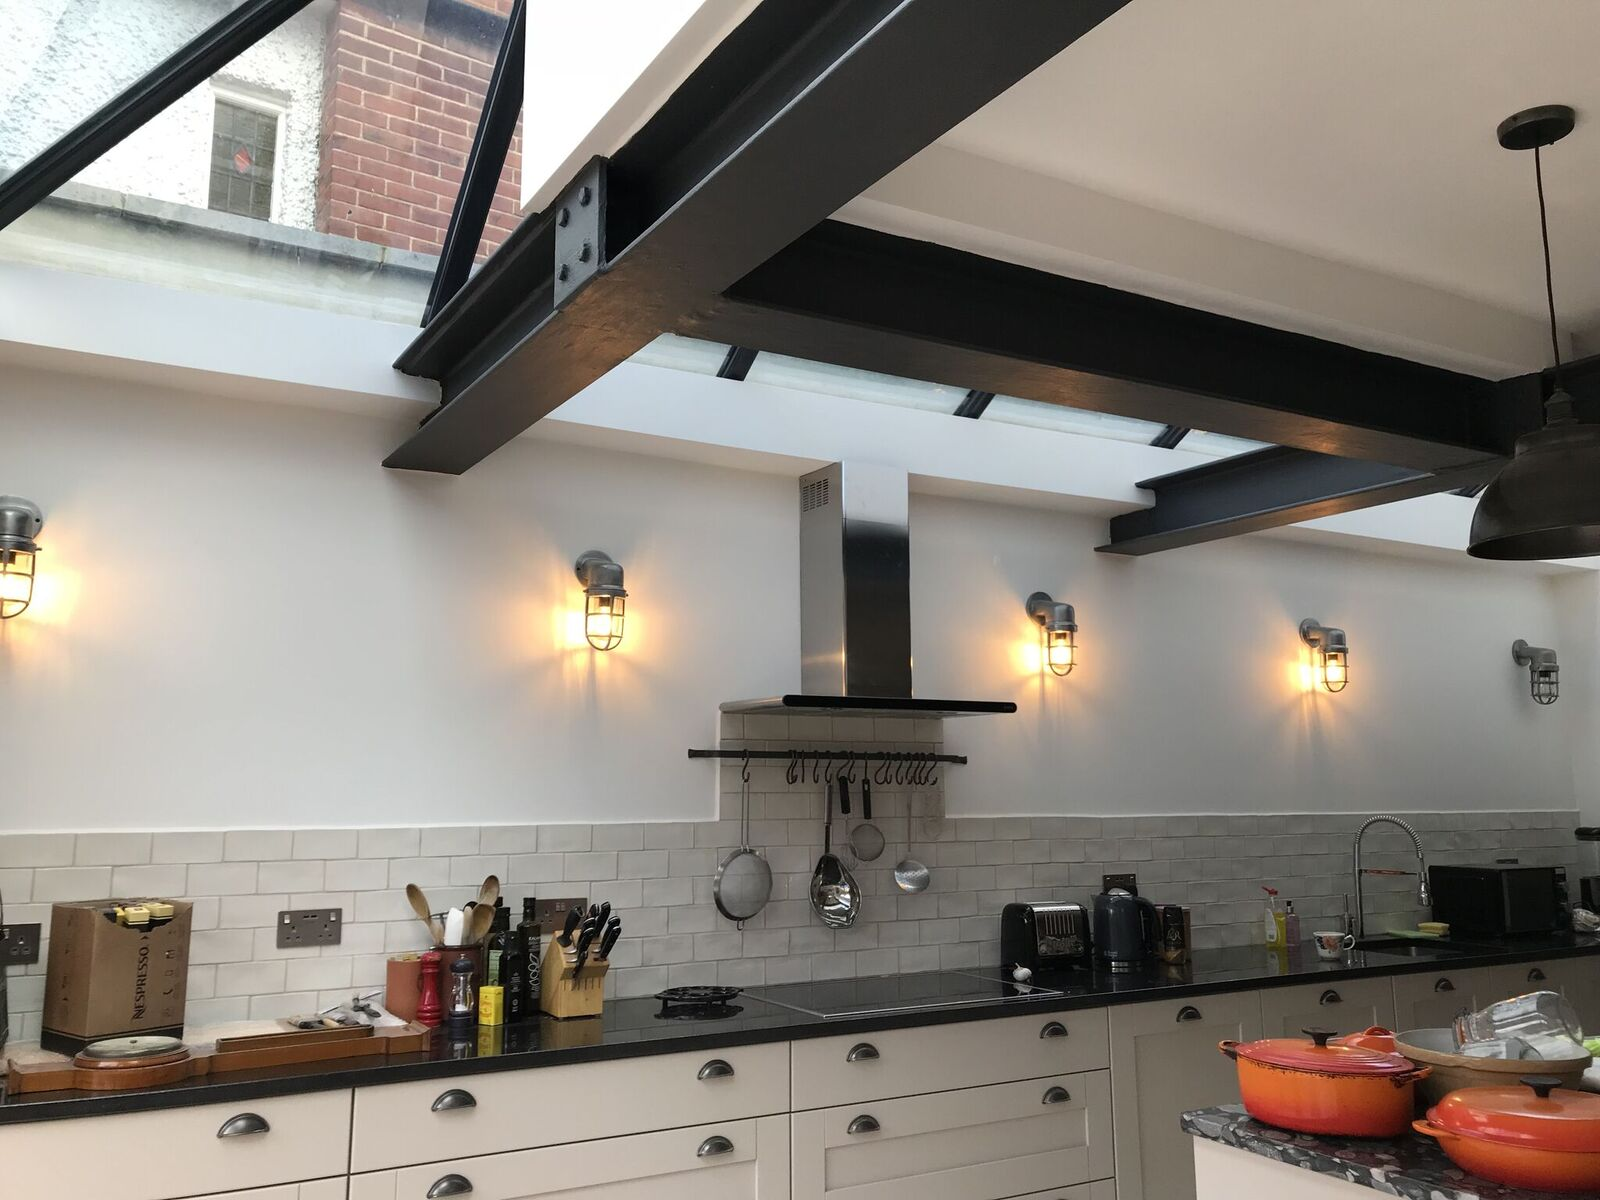 Attic inspired kitchens